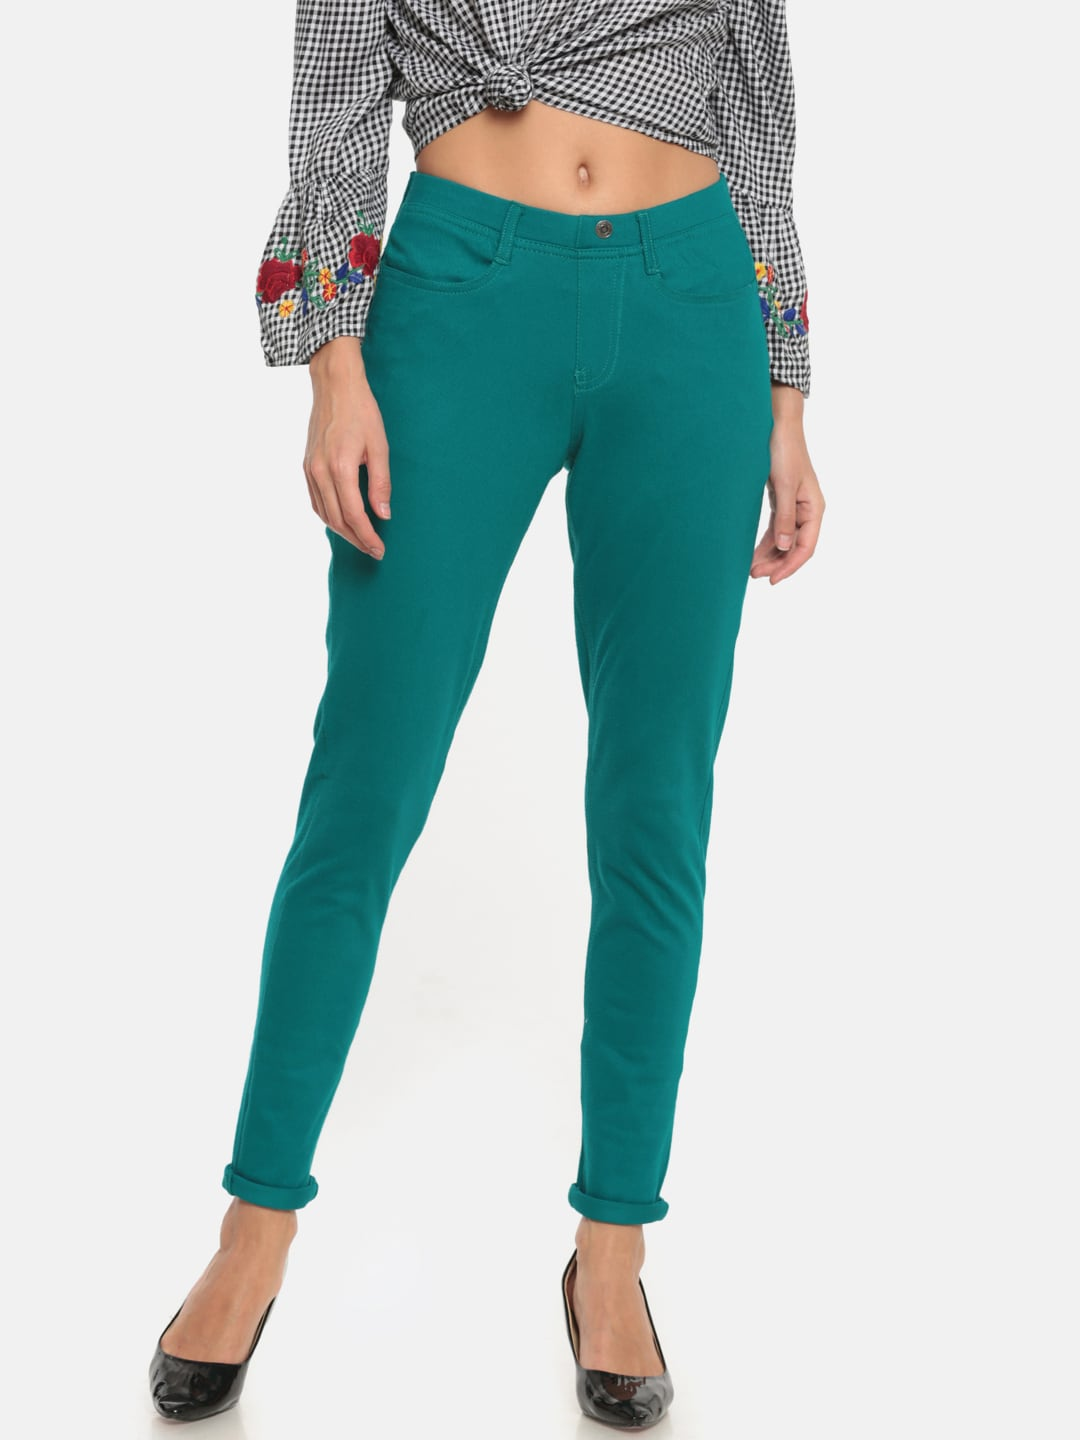 Go Colors Teal Blue Solid Super Stretch Ankle-Length Jeggings image